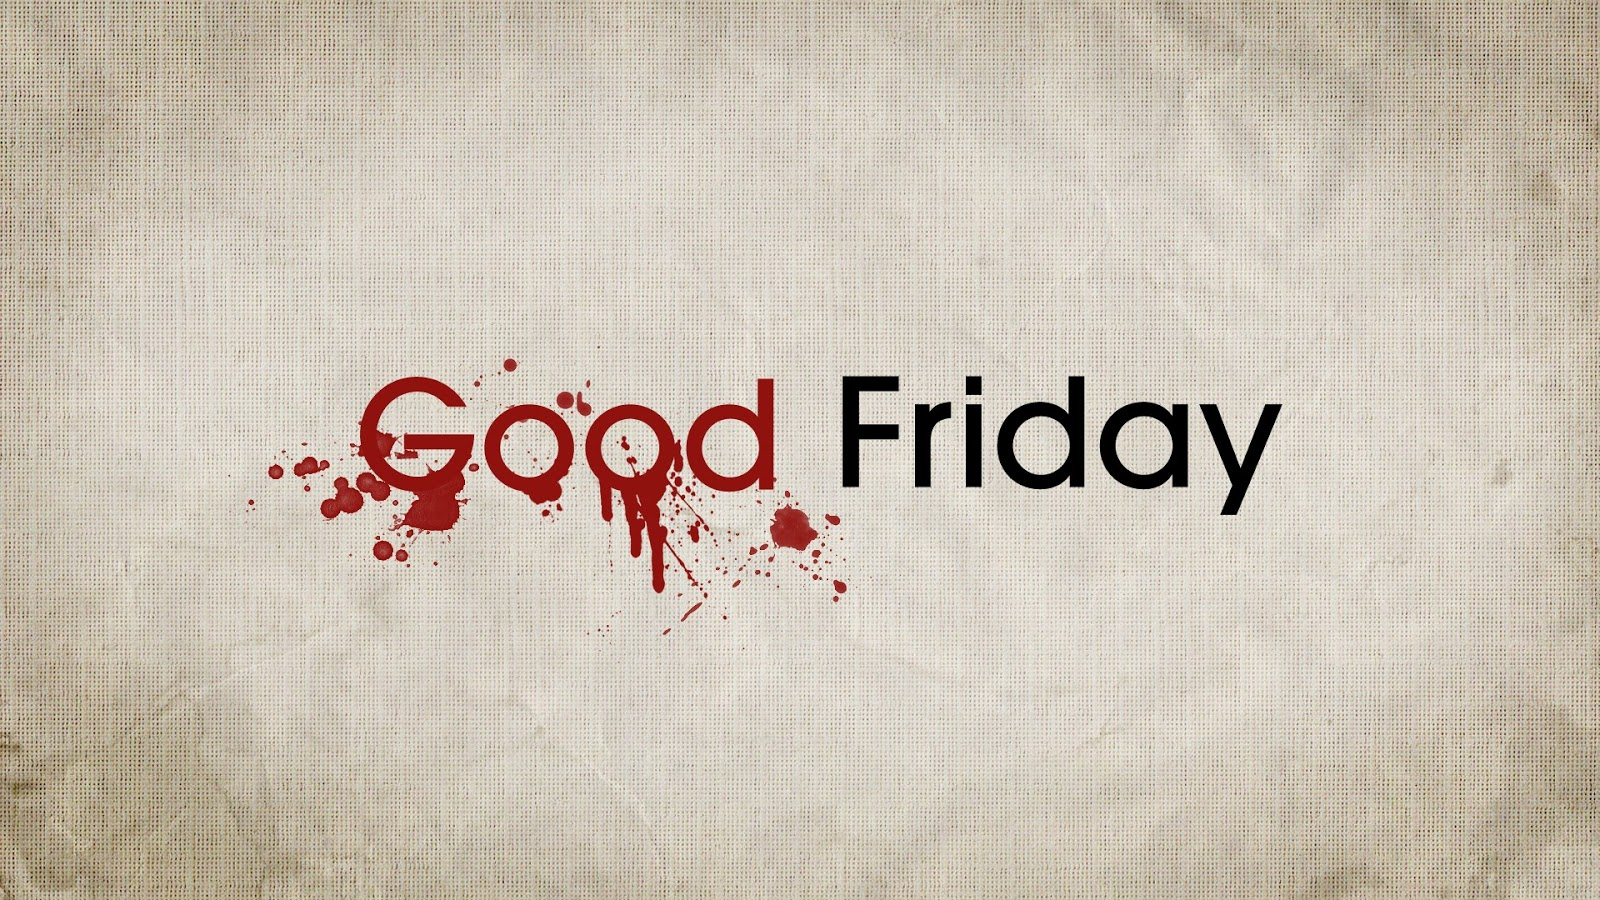 Best 35 hd greeting cards image wallpapers ecards and greeting cards image and display picture of happy good friday kristyandbryce Images